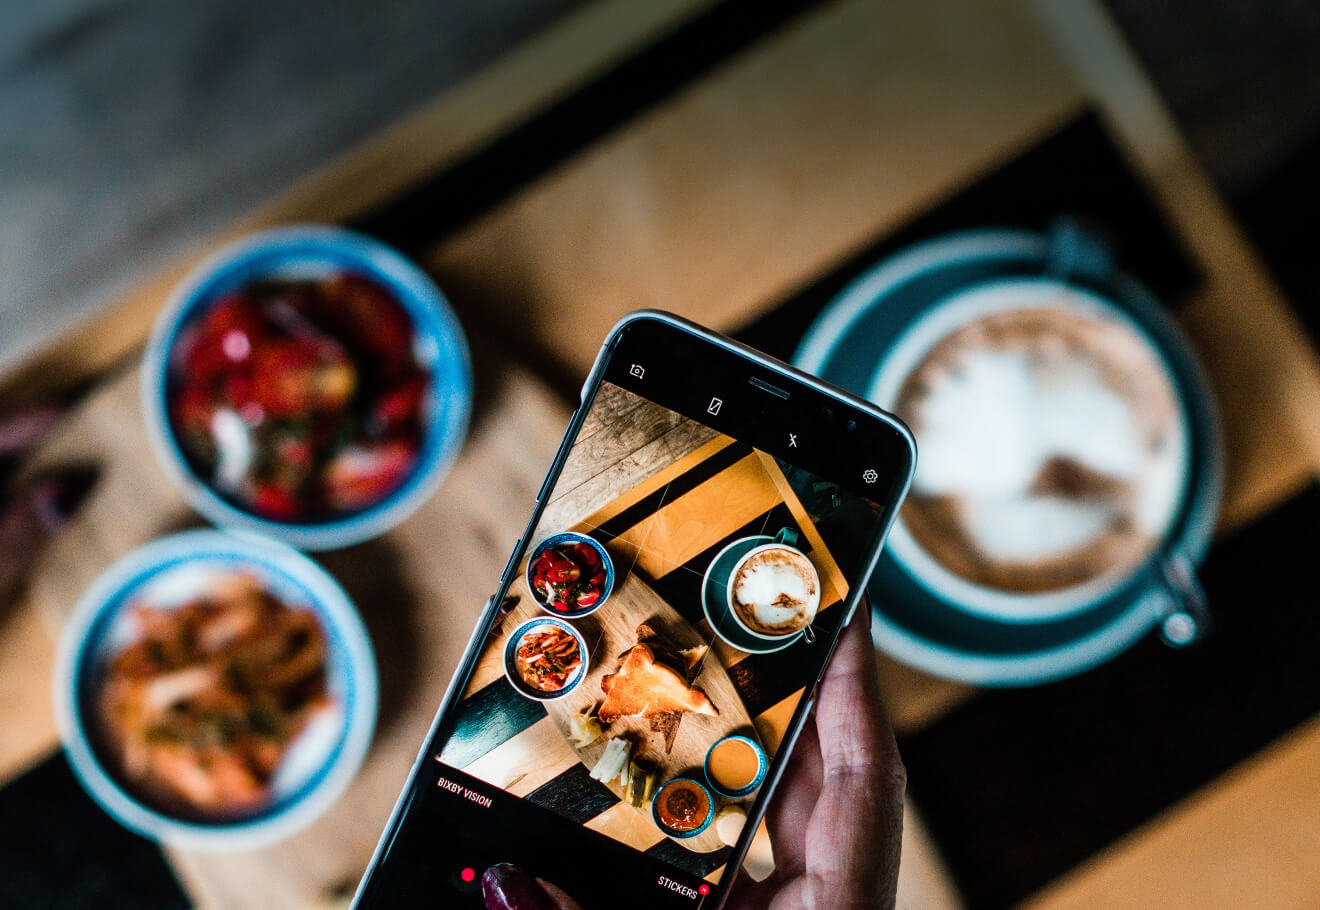 Taking pictures of food using smartphone